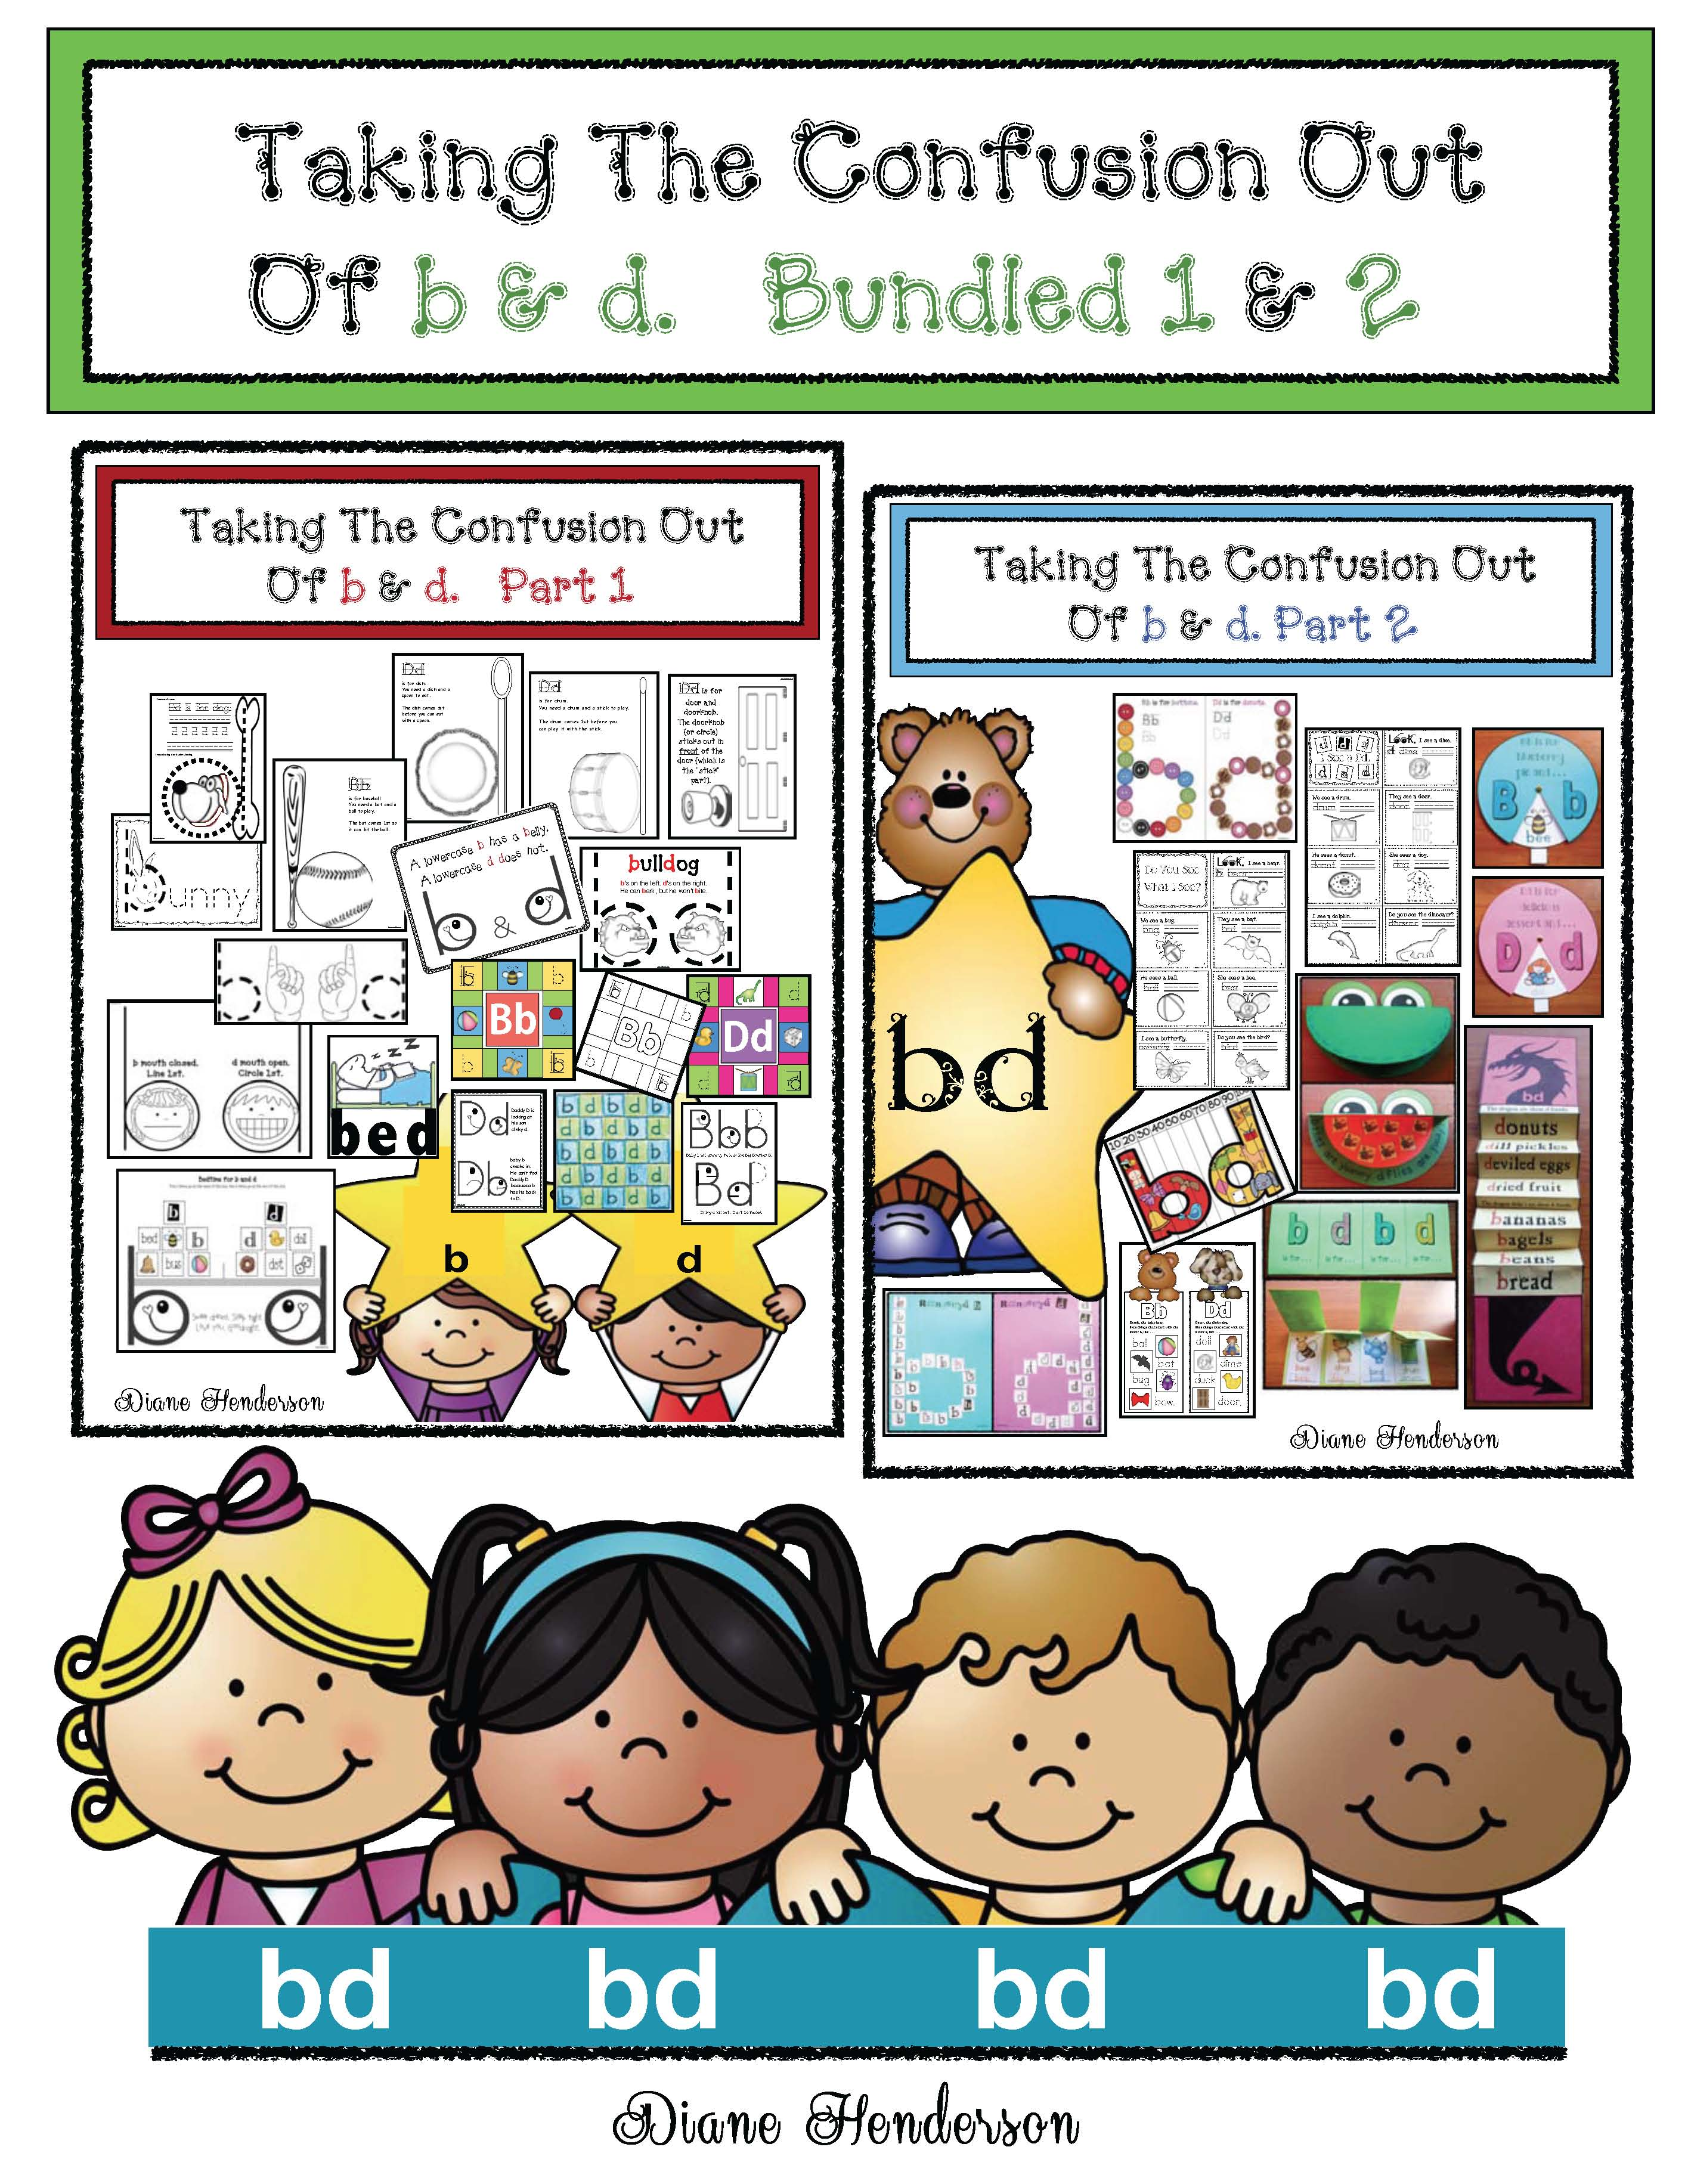 taking the confusion out of b and d, letter reversal tips, letter reversal posters, problems with b and d, confusing b and d solutions, alpahbet activities, alphabet games, alphabet assessments, alpahbet crafts, alphabet stories, alphabet songs,